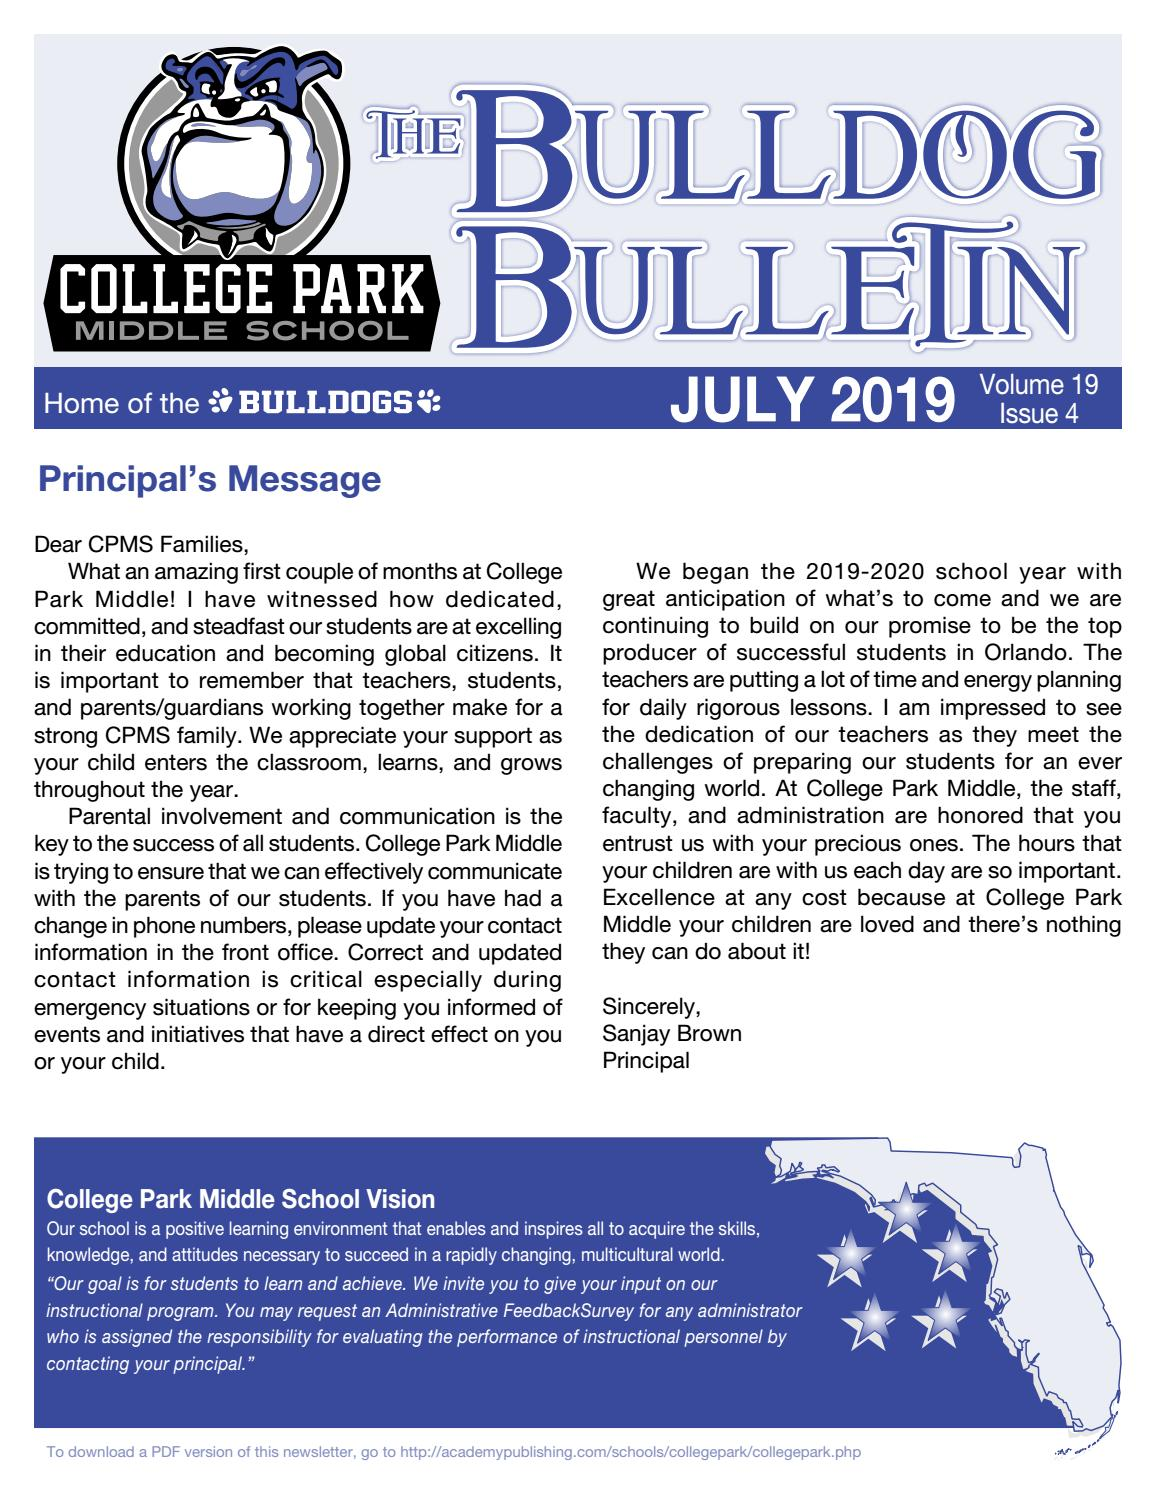 College Park Middle School Newsletter by Academy Publishing, Inc